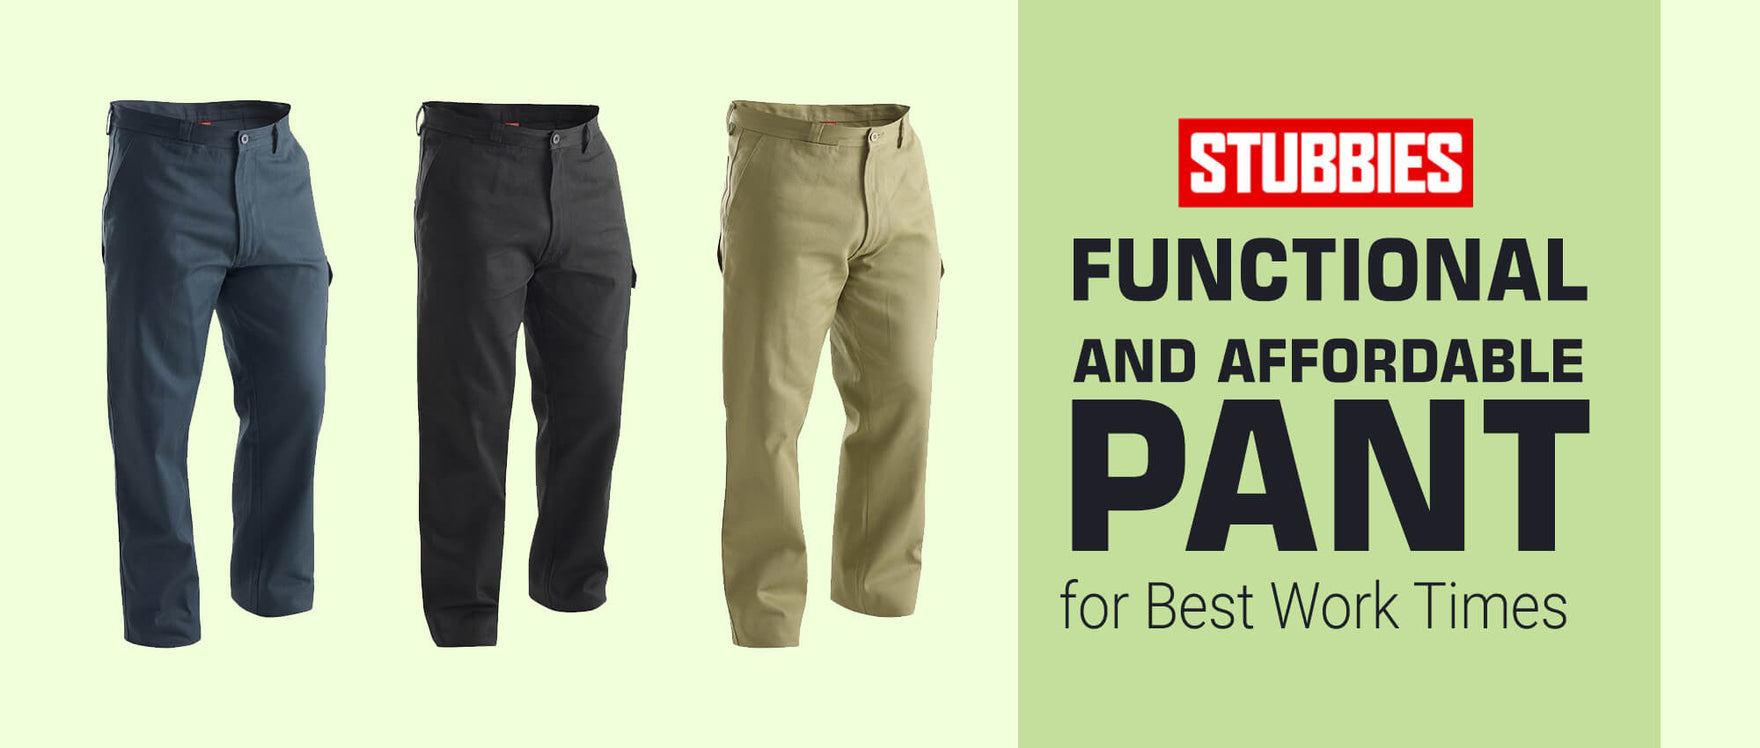 Stubbies Functional and Affordable Pant for Best Work Times